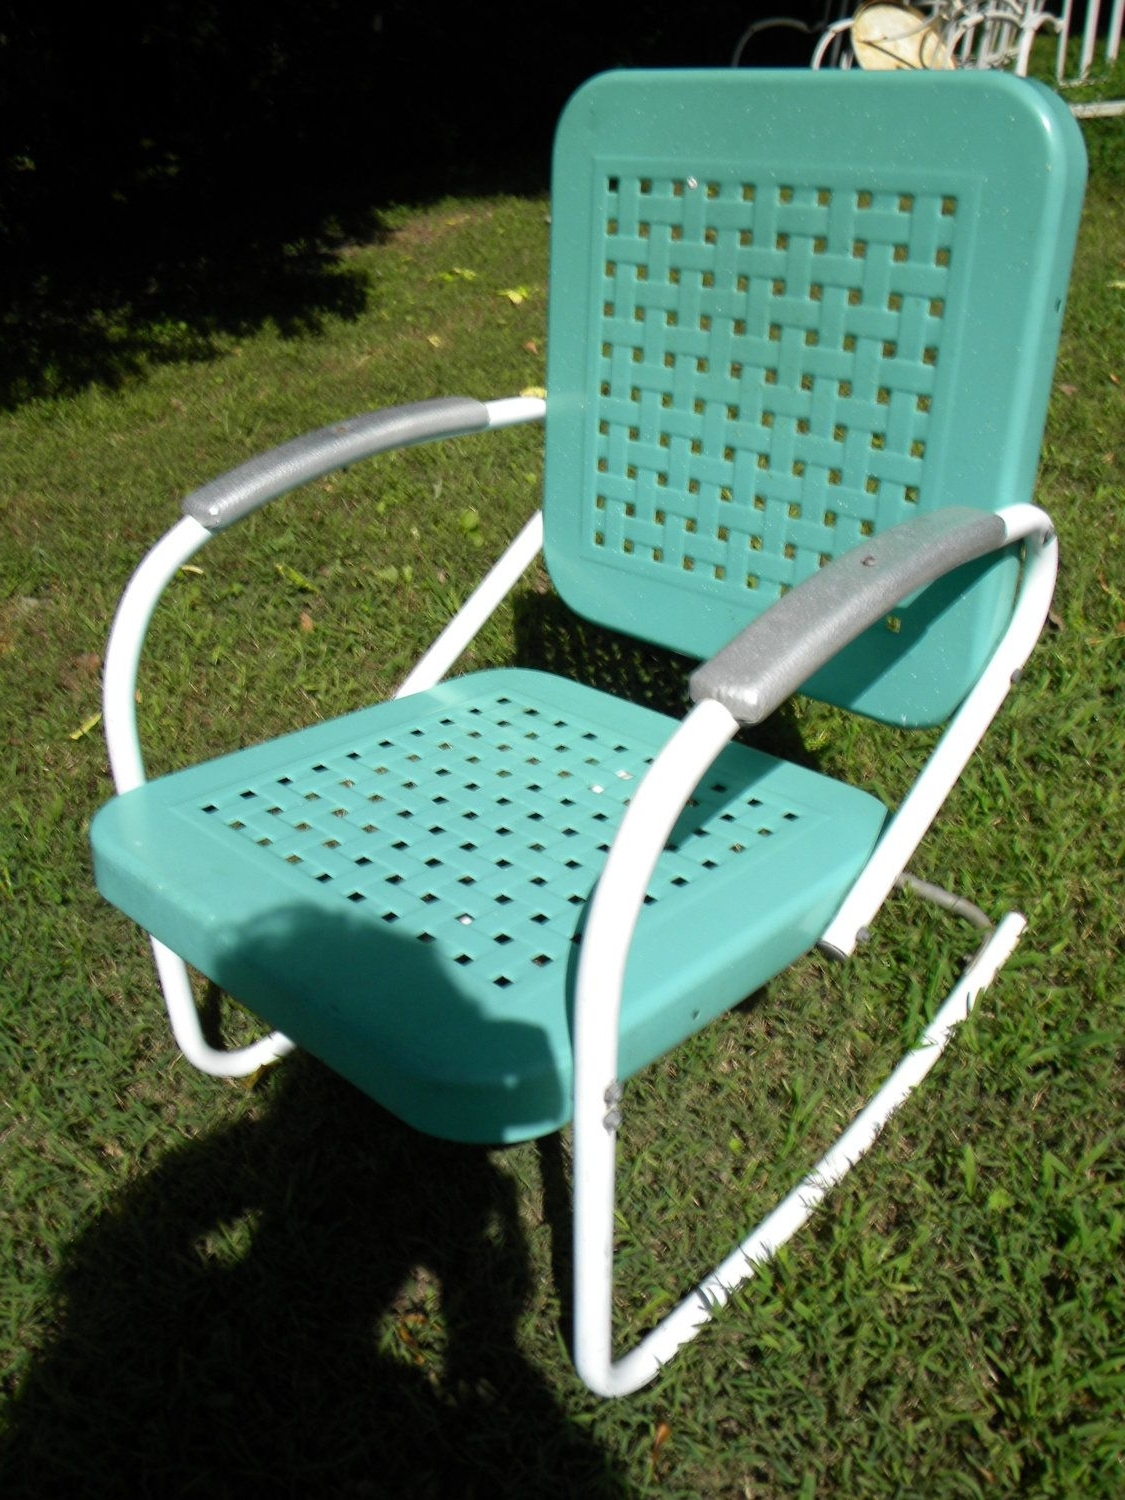 Recent Vtg 50S 60S Retro Outdoor Metal Lawn Patio Porch Rocking Chair Regarding Retro Outdoor Rocking Chairs (View 3 of 15)